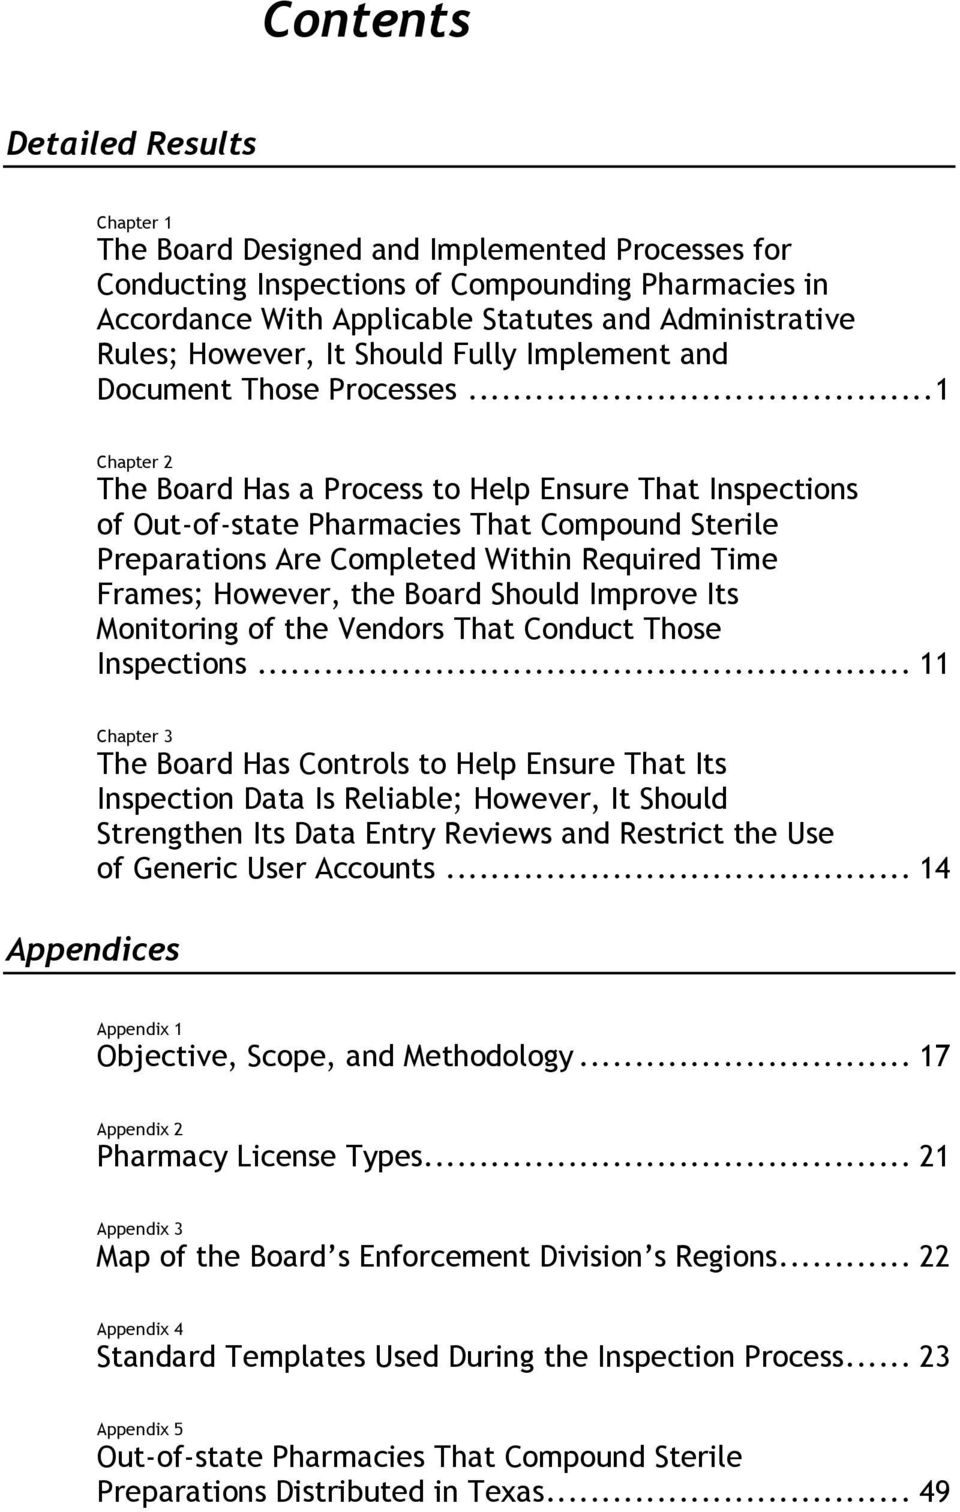 .. 1 Chapter 2 The Board Has a Process to Help Ensure That Inspections of Out-of-state Pharmacies That Compound Sterile Preparations Are Completed Within Required Time Frames; However, the Board